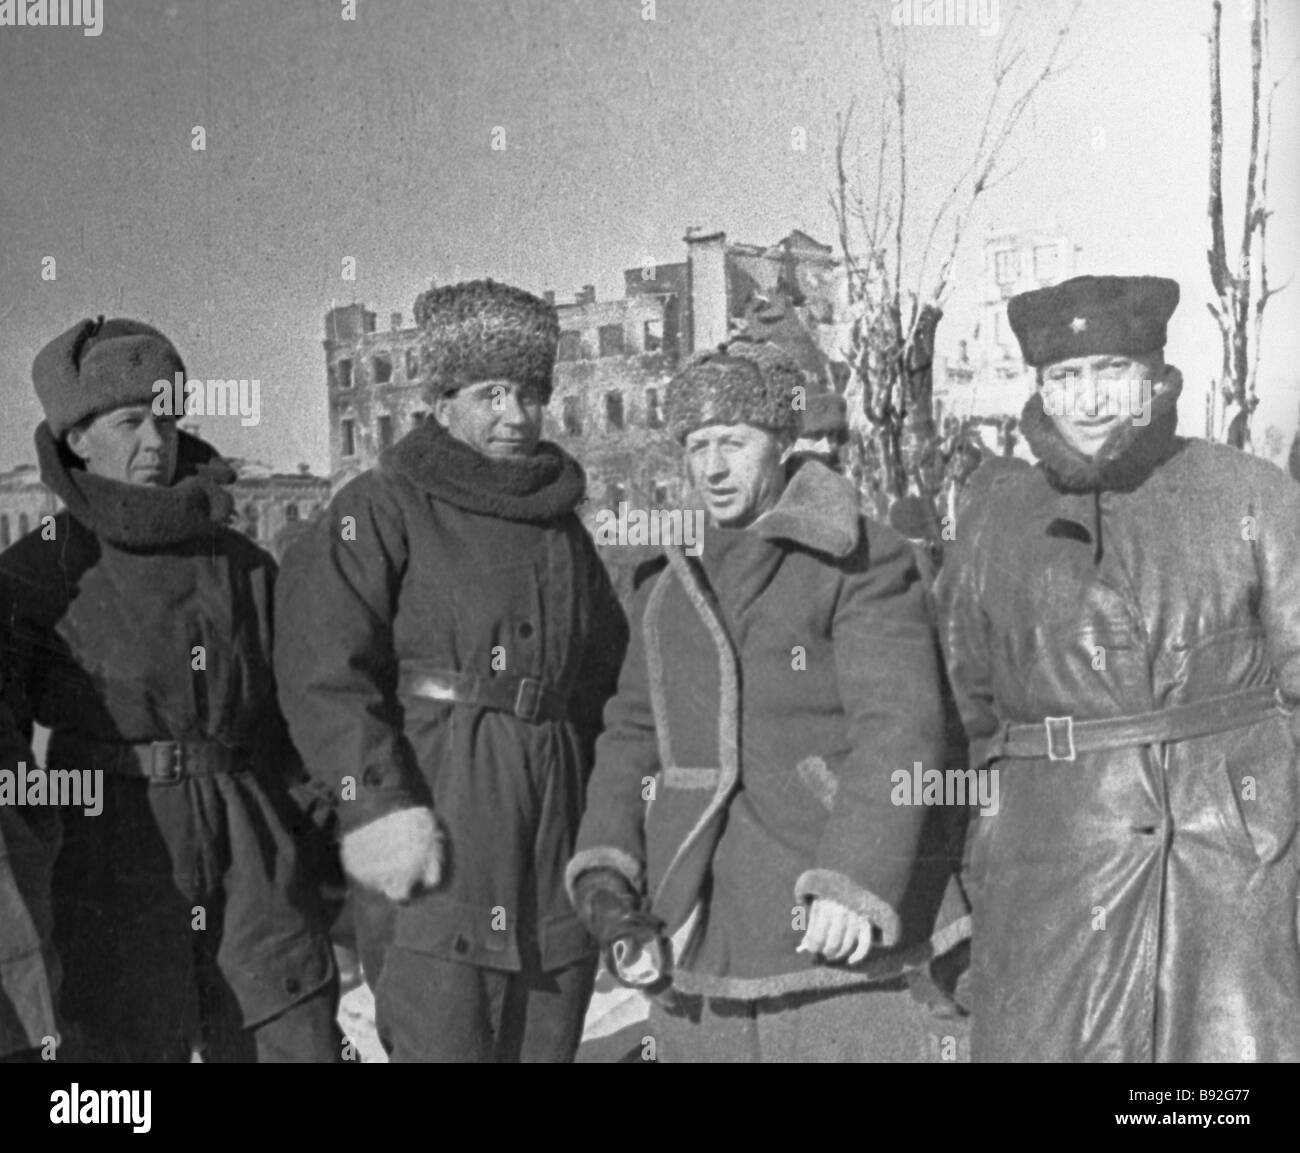 General Store Stock Photos General Store Stock Images: General Rodimtsev Second To The Right And General Savelyev